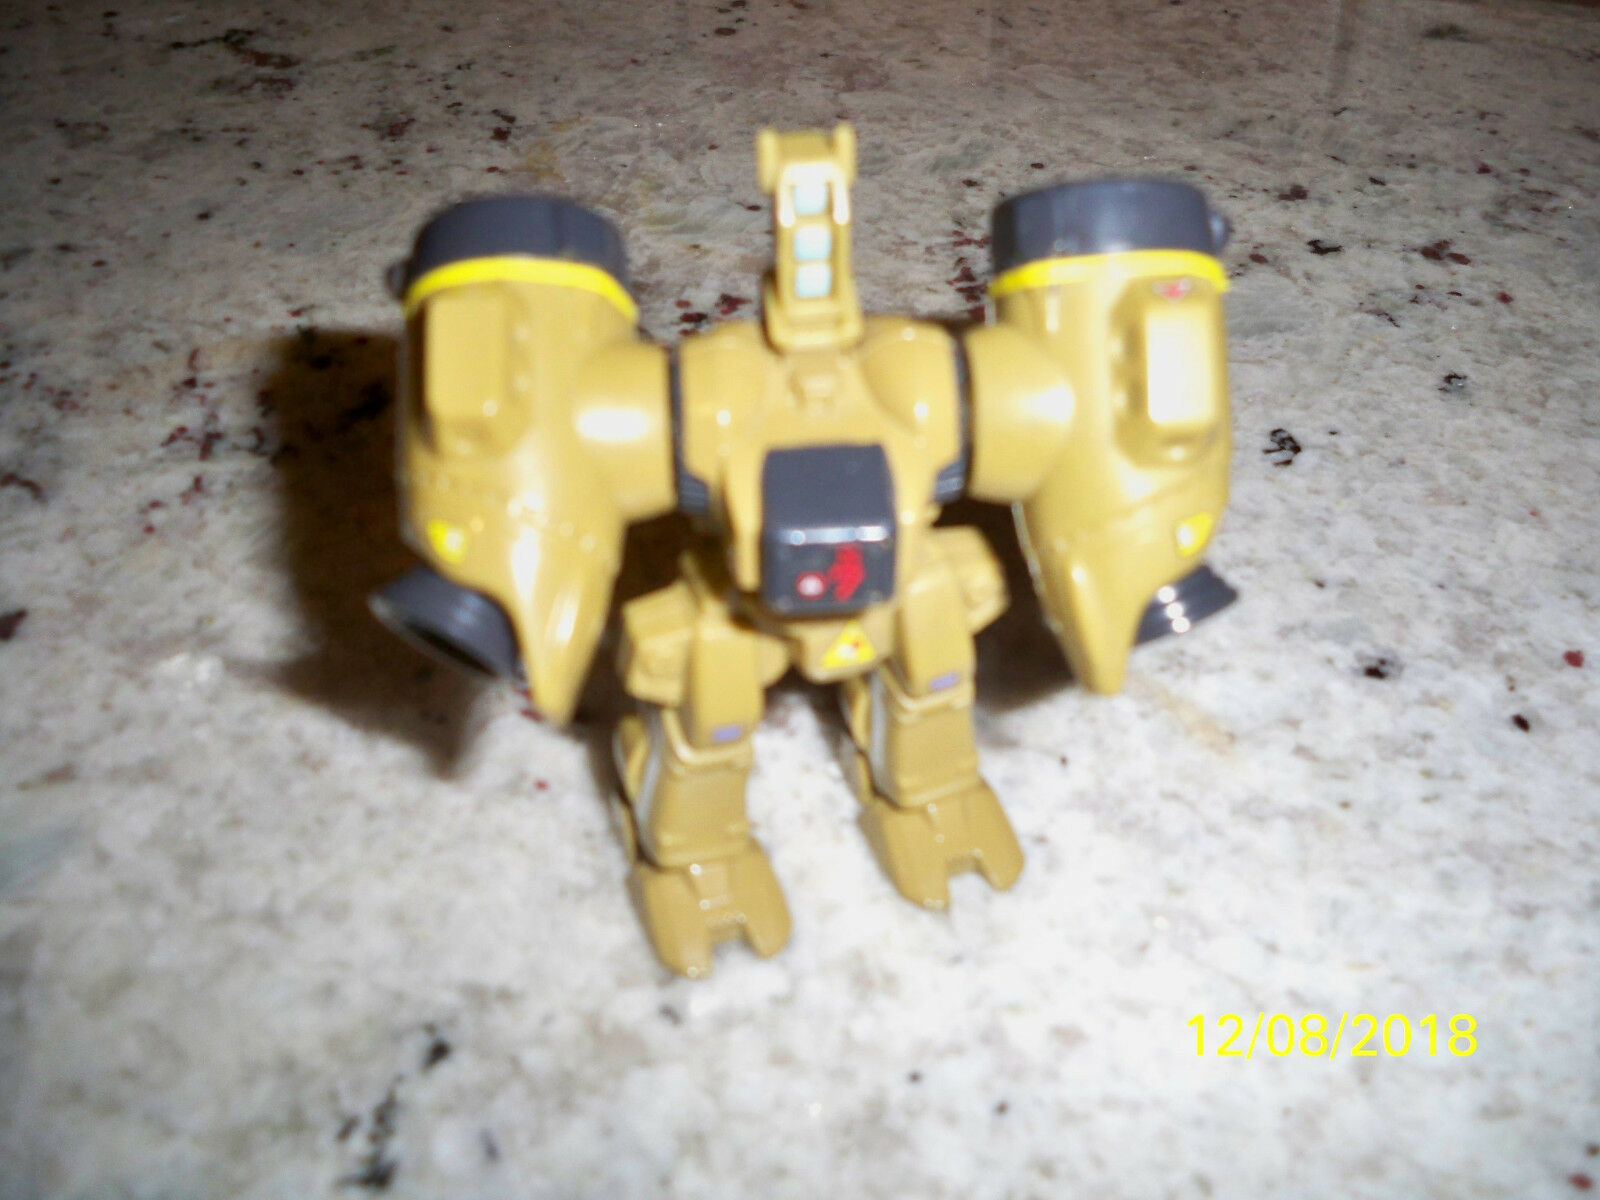 1985 Matchbox Robotech Spartan Diecast and plastic 3 inch figure vintage macross